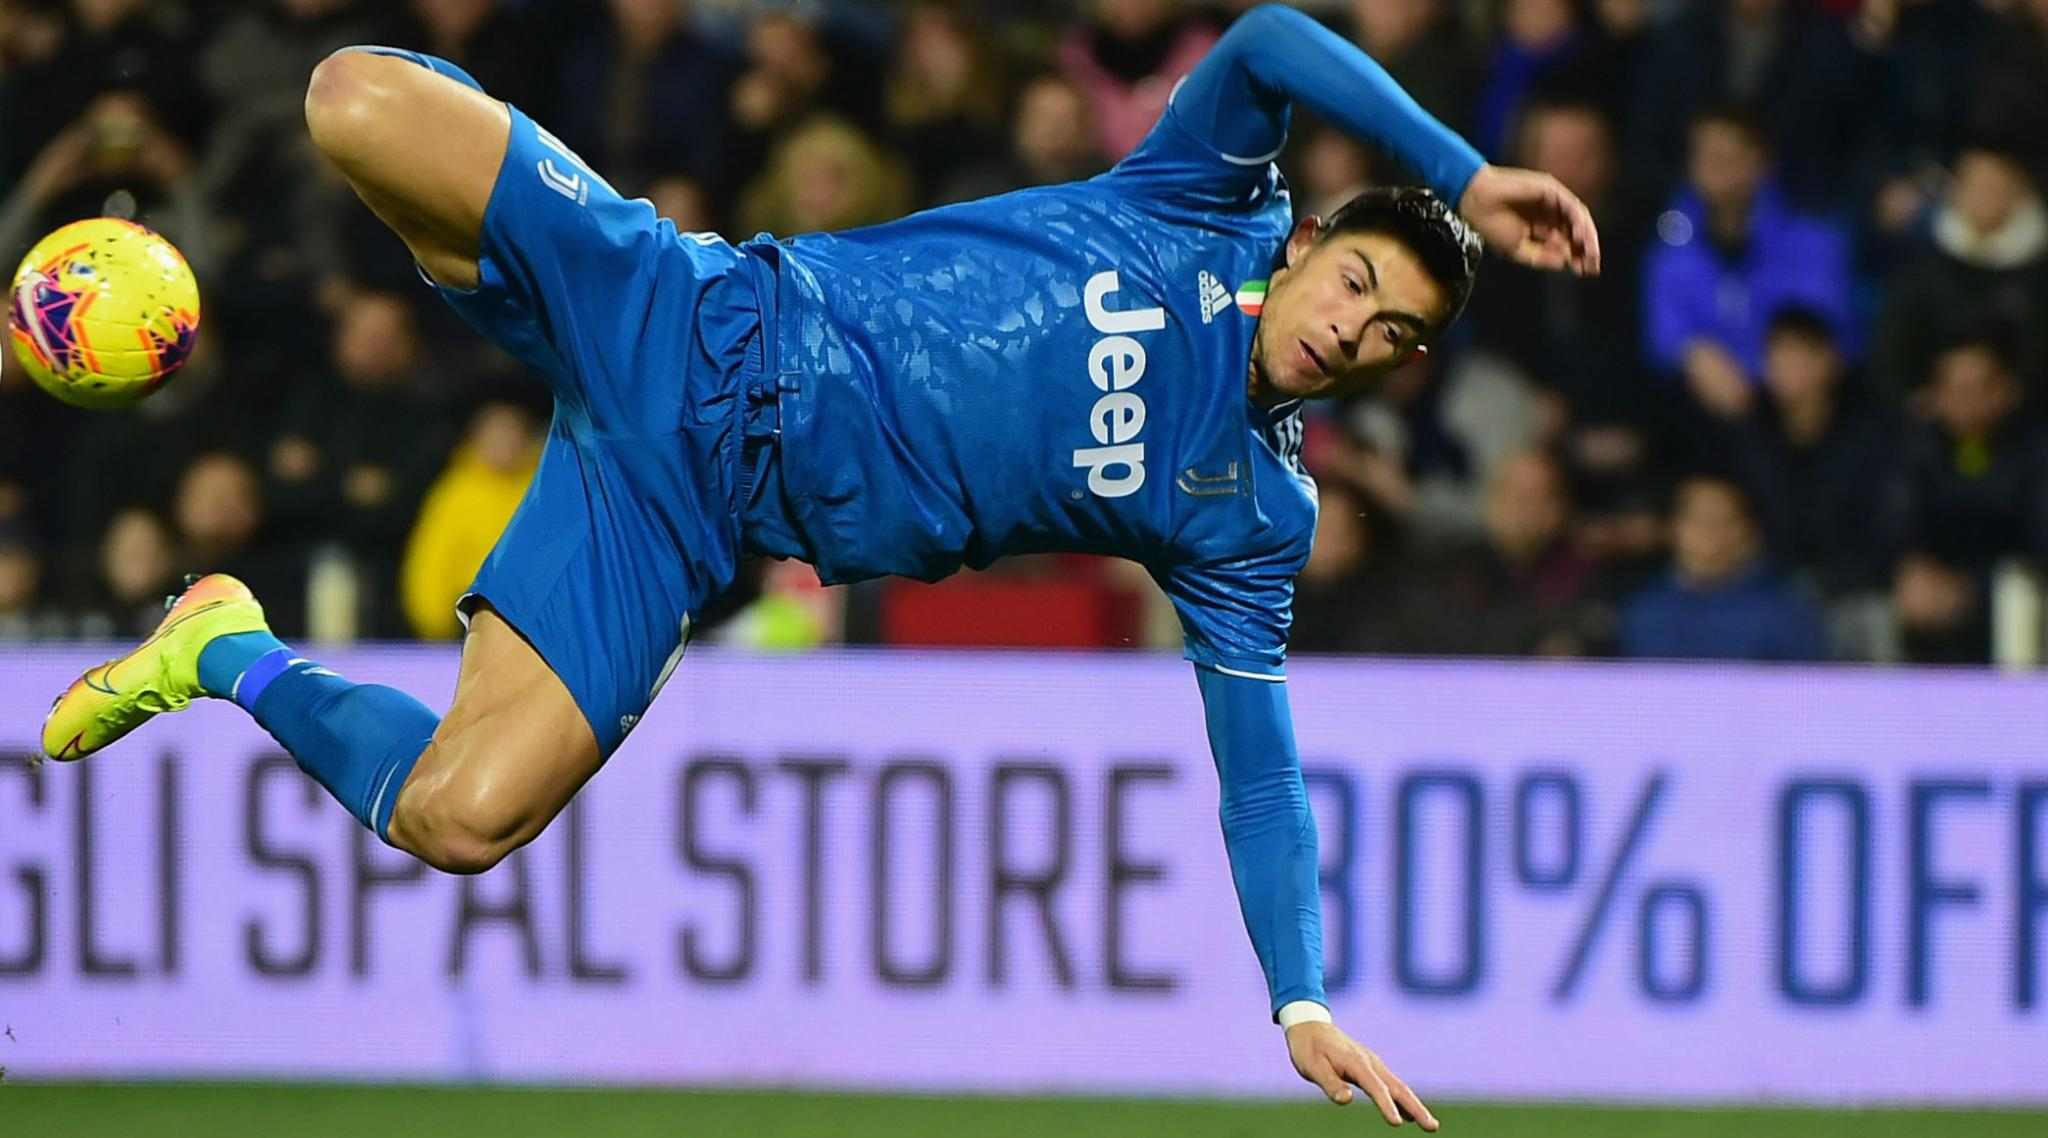 SPAL 1-2 Juventus, Serie A 2019-20: Cristiano Ronaldo Scores For 11th Consecutive Game As Bianconeri's Go Four Points Clear At the Top